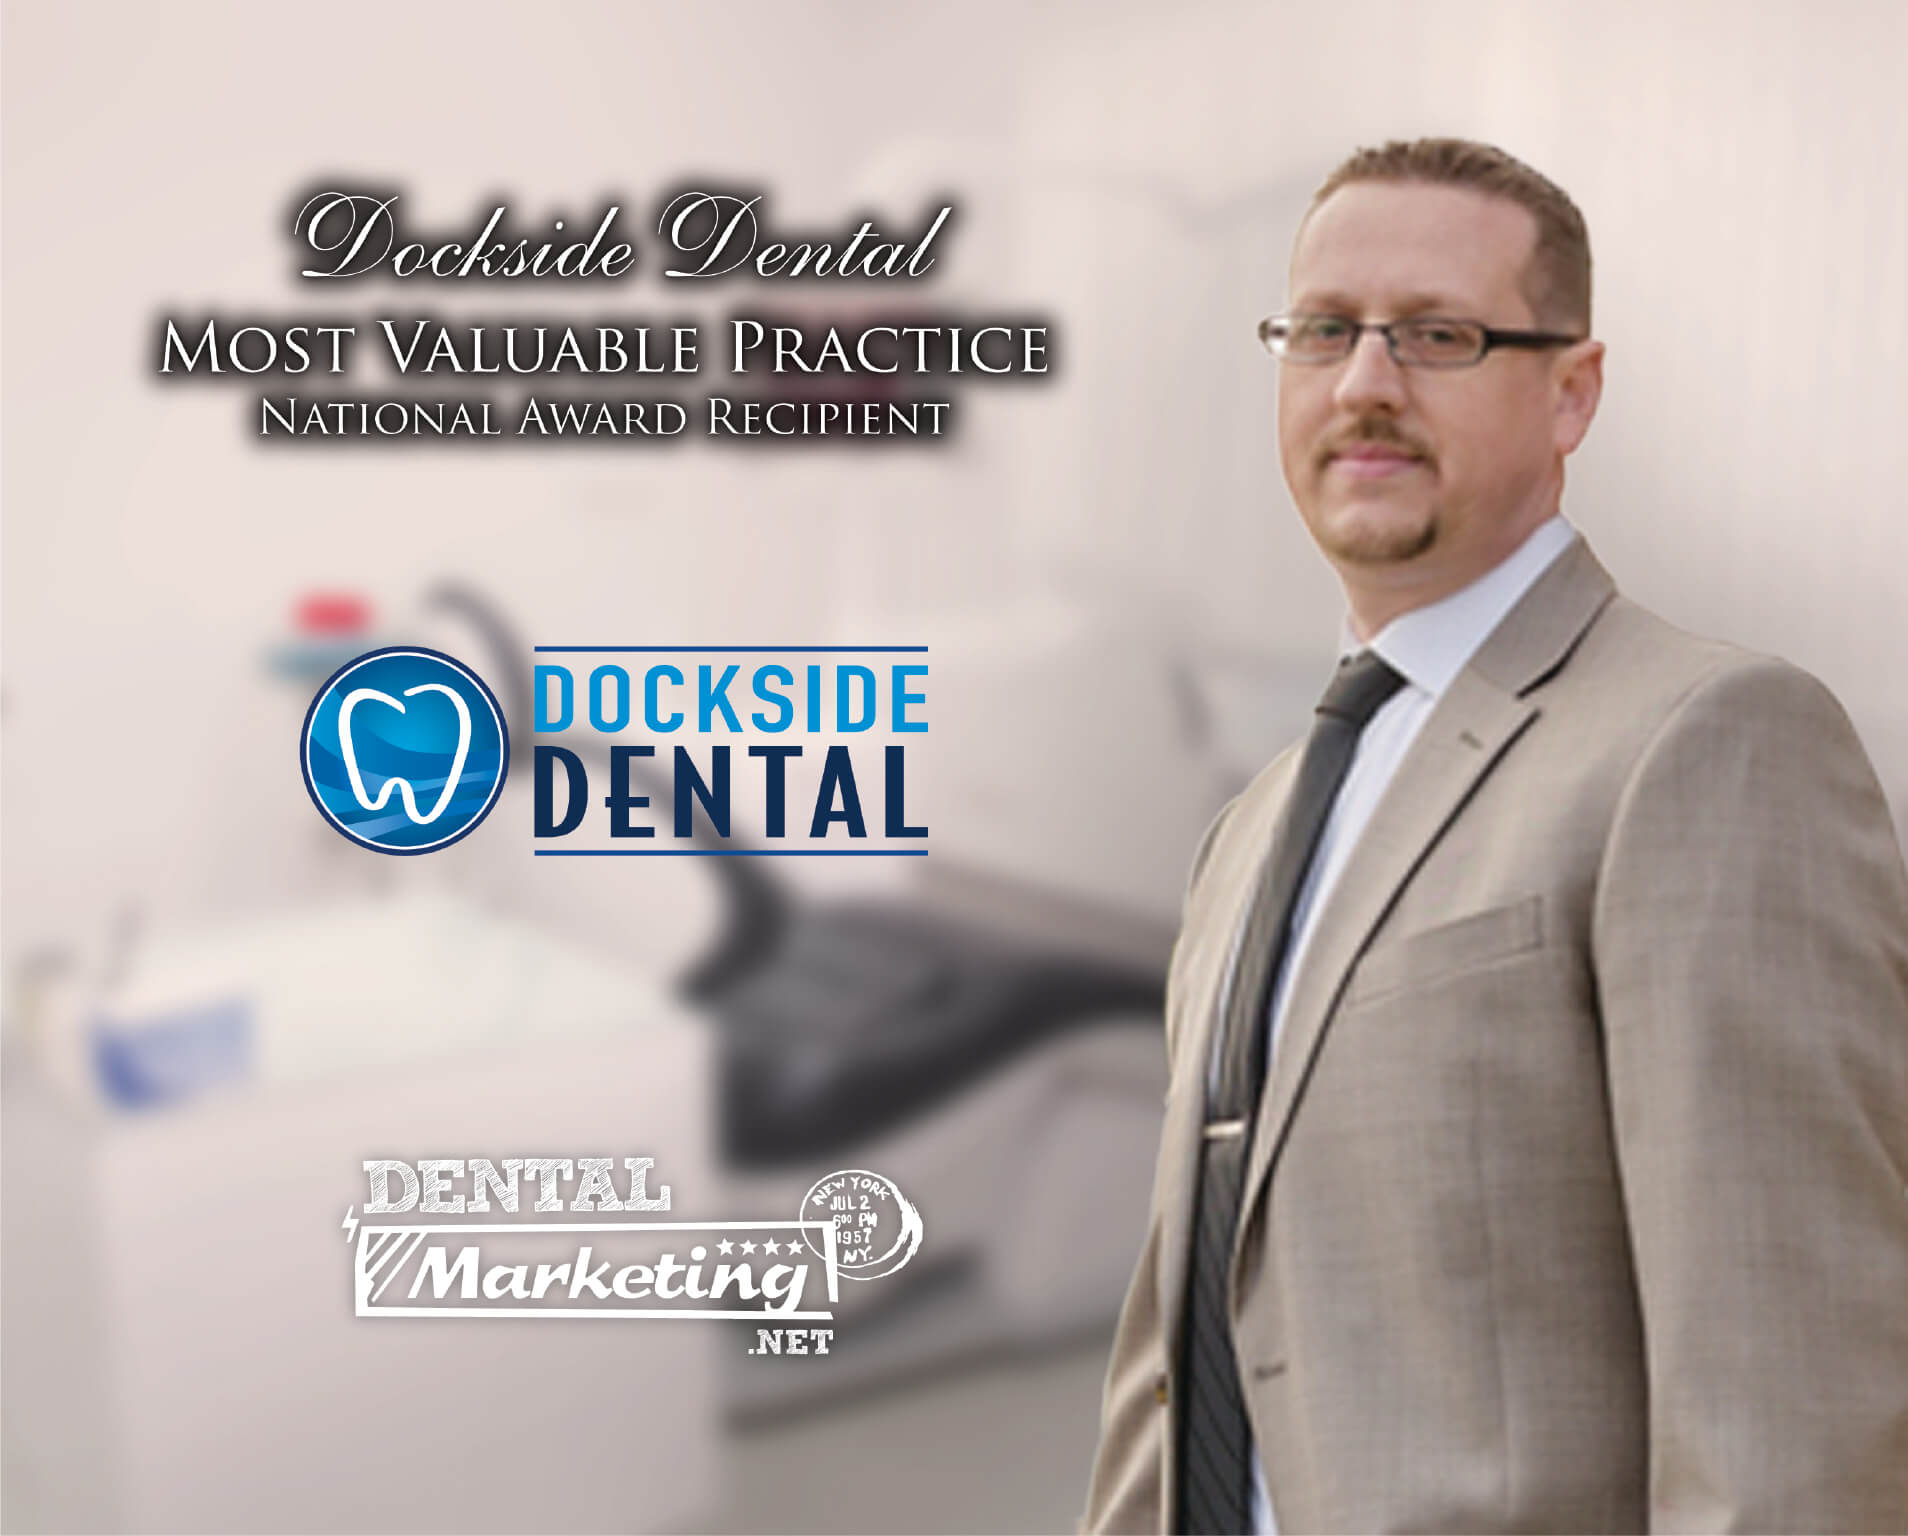 Dockside Dental - Most Valuable Practice